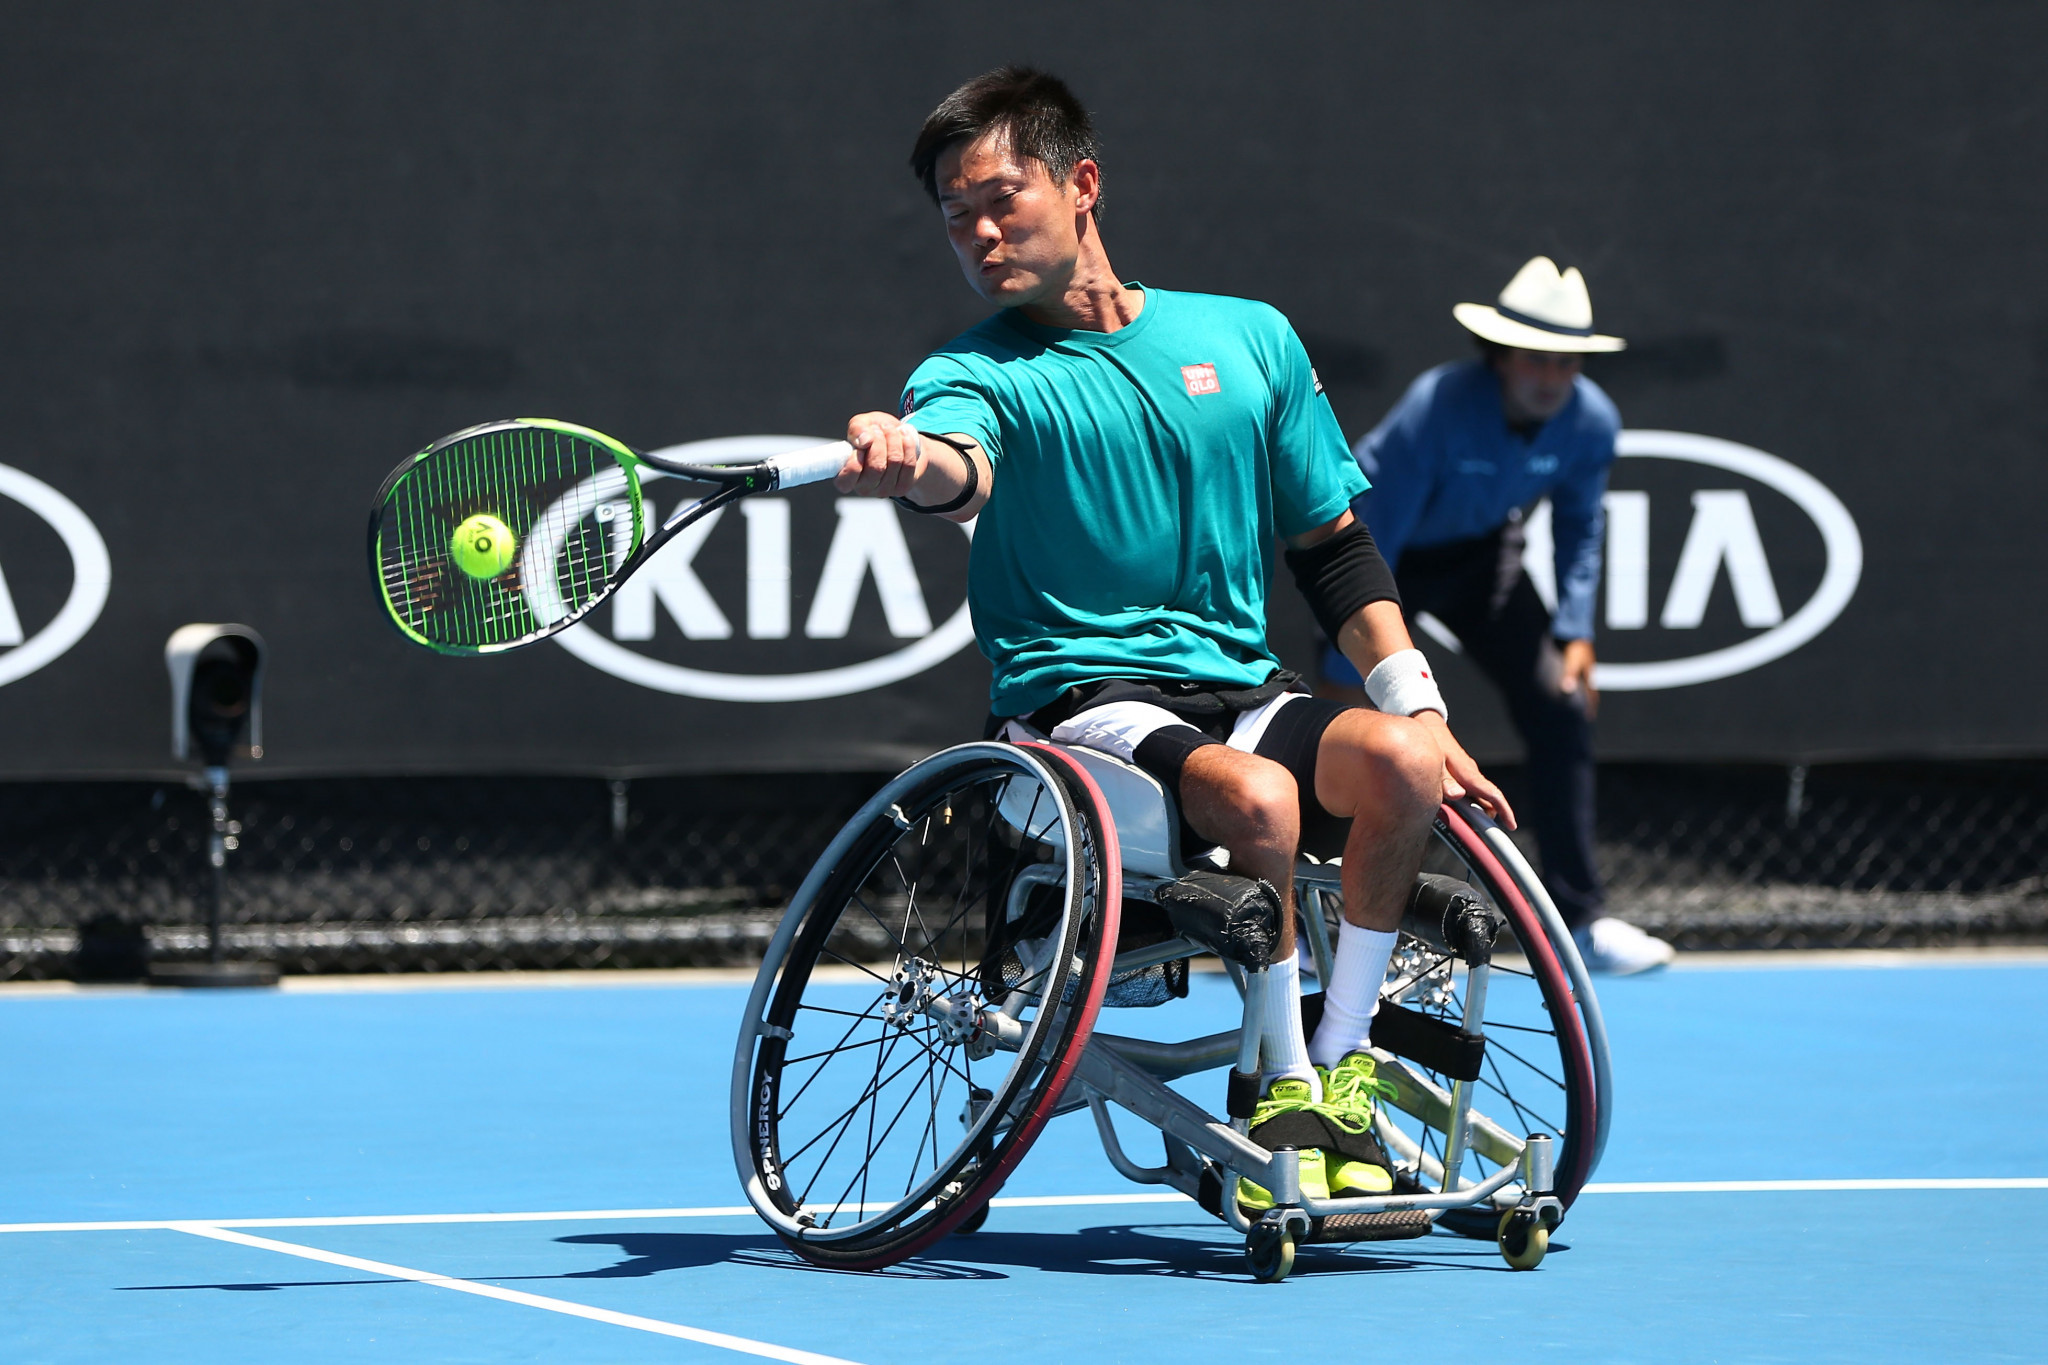 World number one Kunieda aiming to continue good form at ITF Super Series event in Louisiana